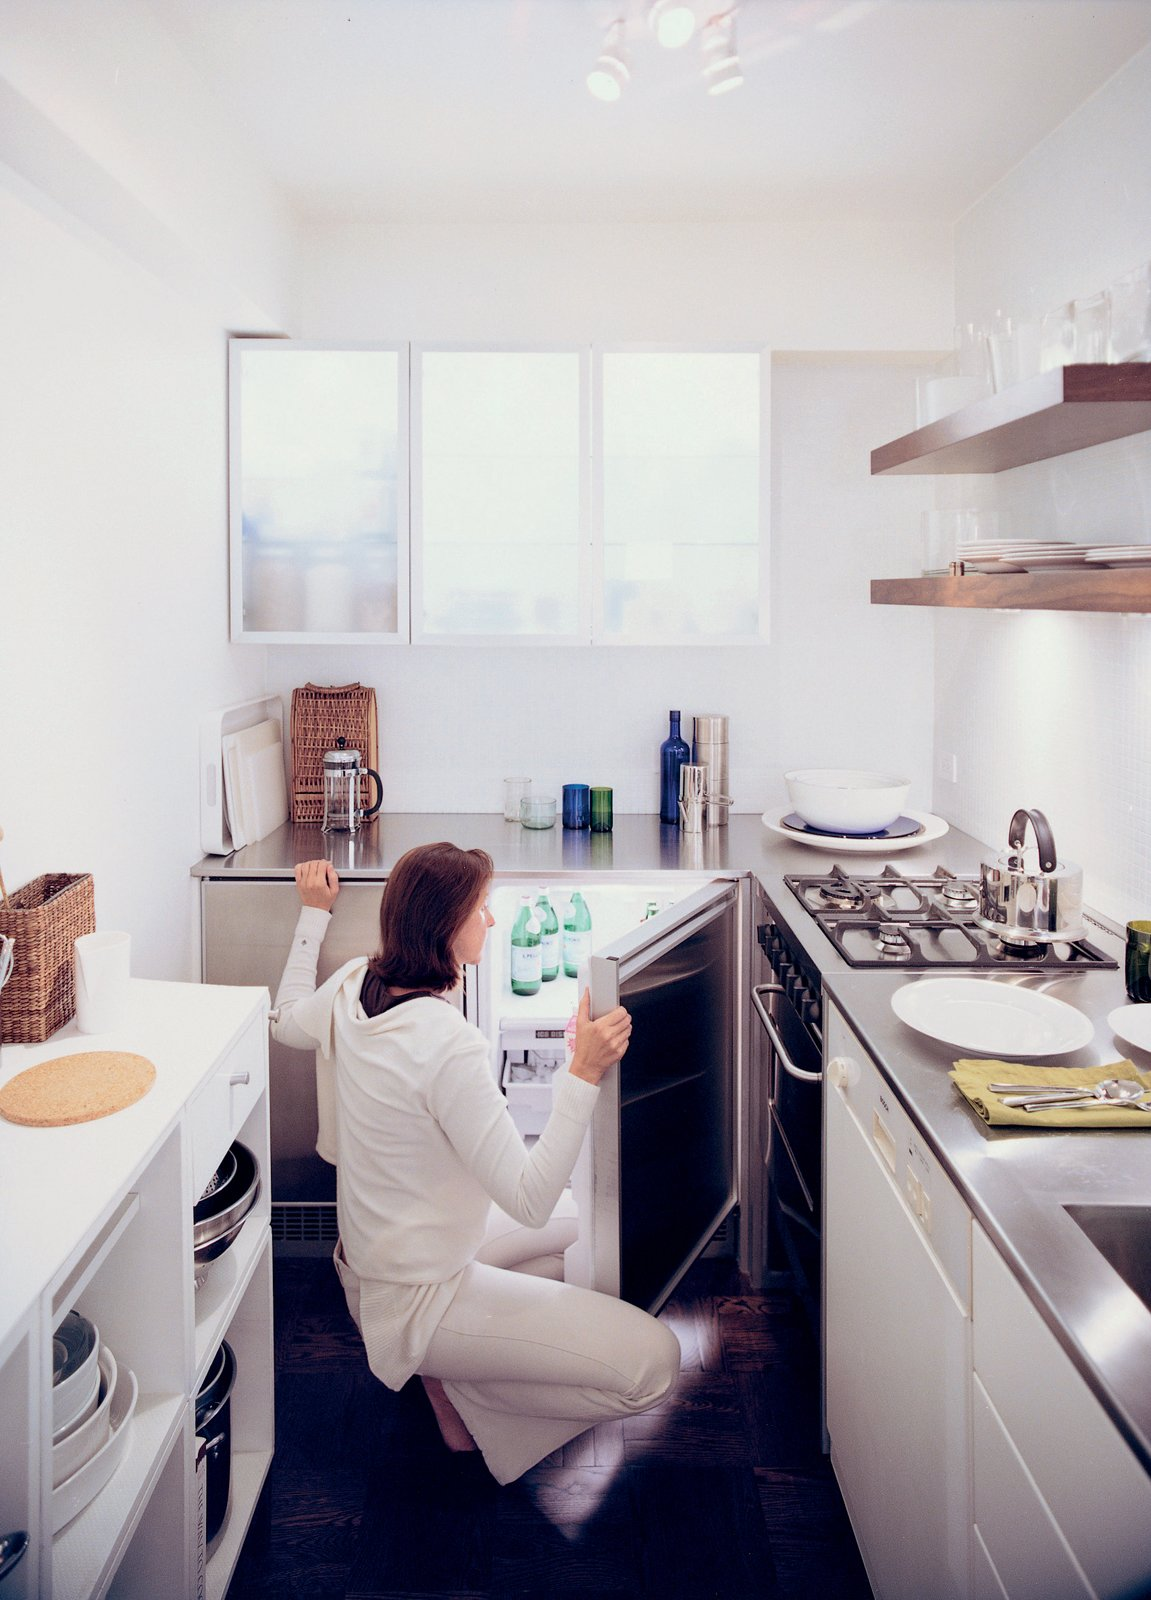 Goolrick reoriented the kitchen and chose sleek stainless steel countertops and bright white walls and cupboards to create the illusion of space.